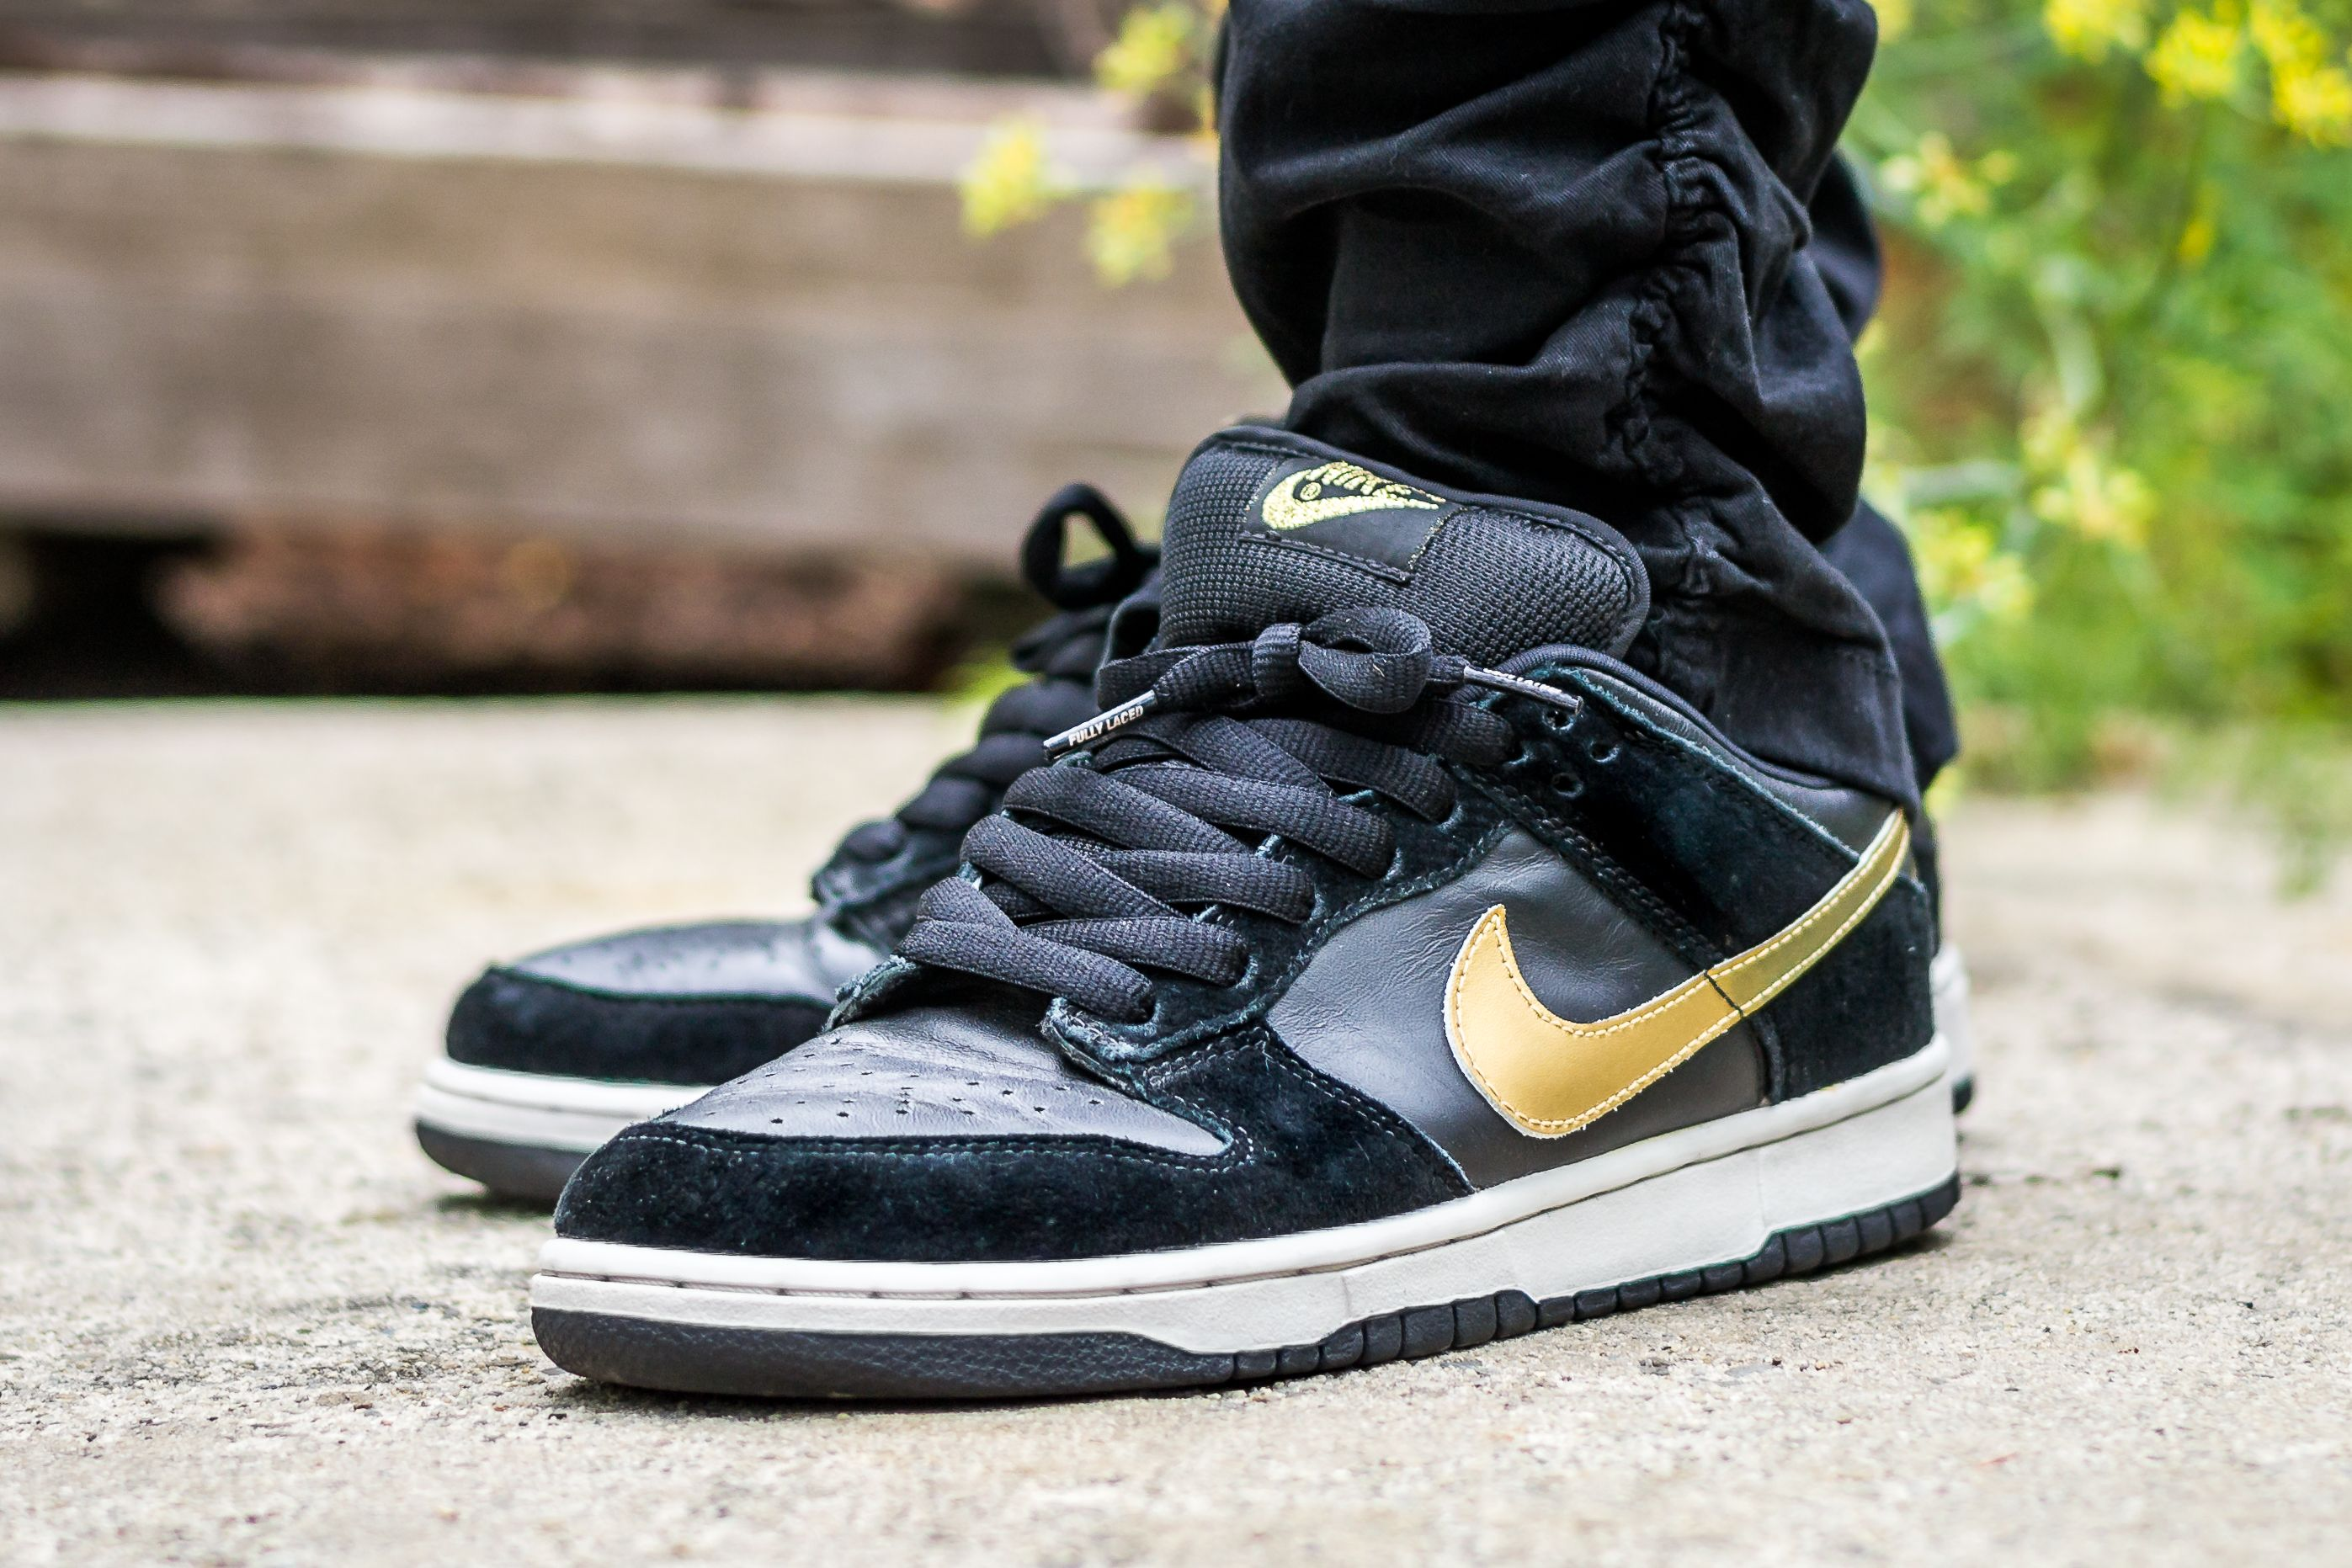 247b771160b9 Click to see my video review of the Nike Dunk Low SB Takashi and find out  where to buy a pair yourself